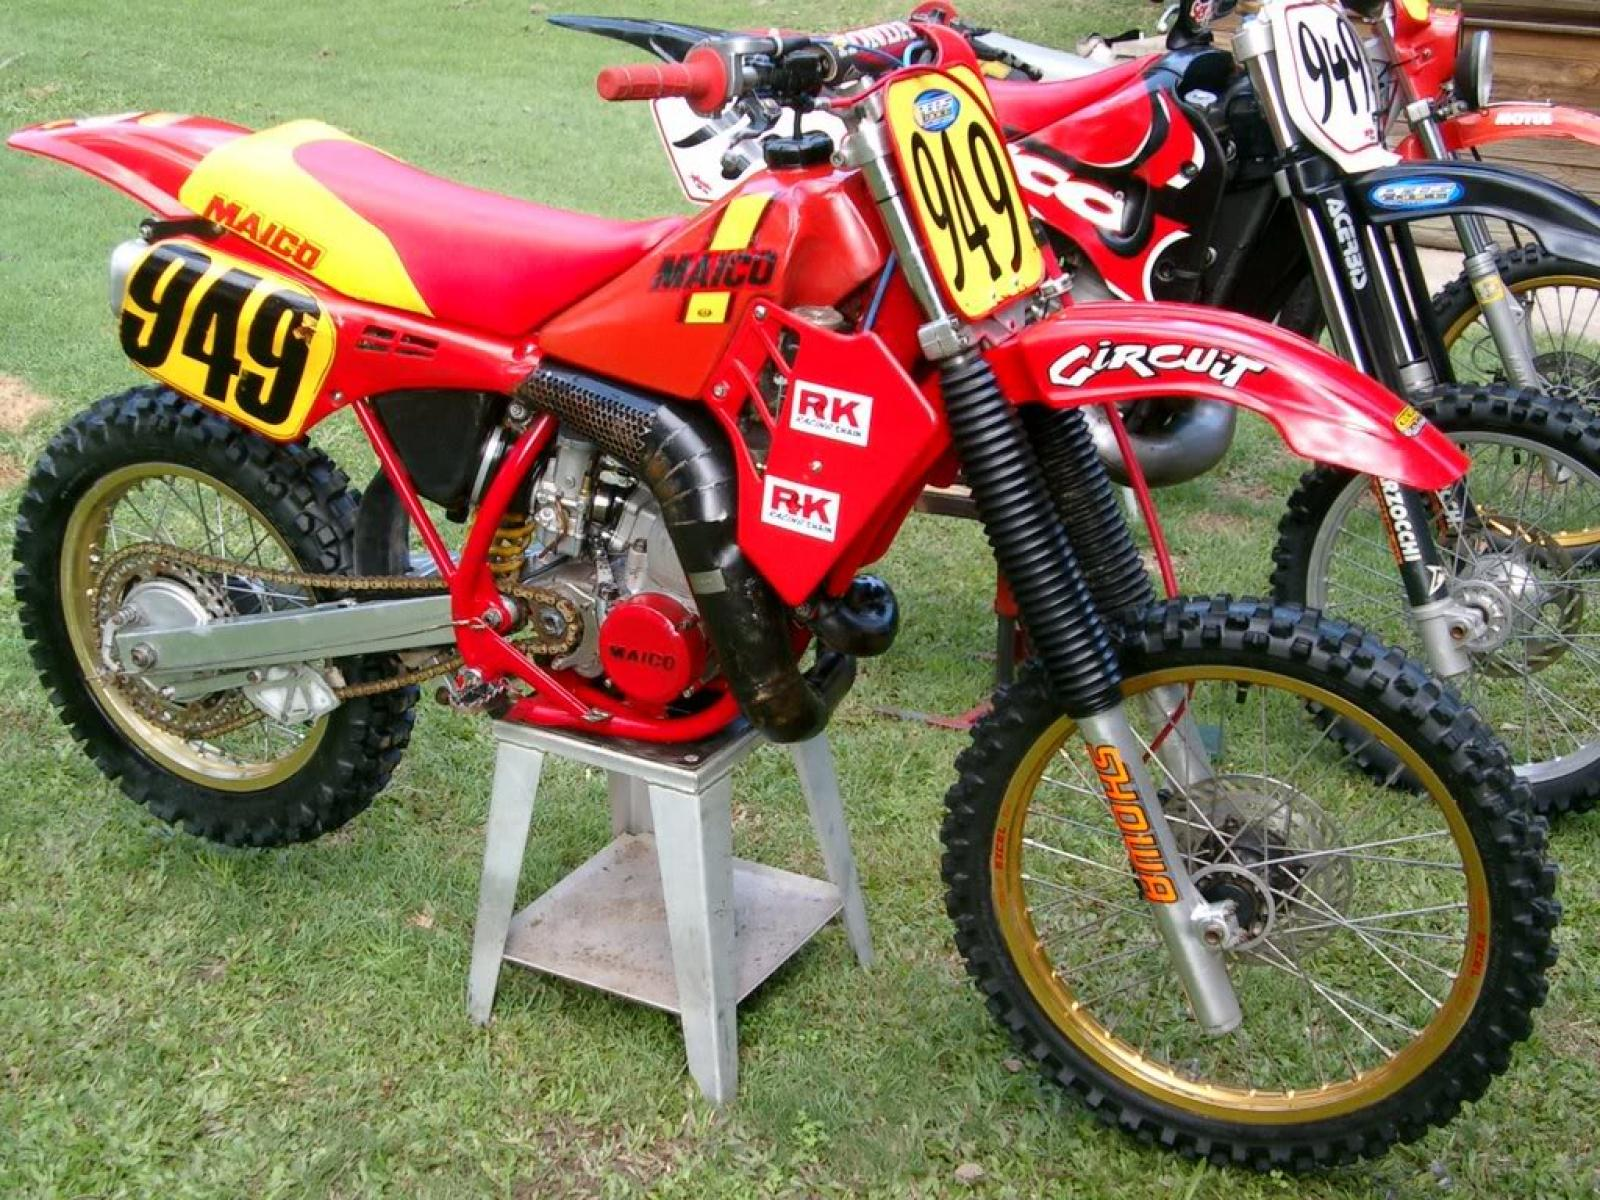 Maico GME 250 1985 images #102230